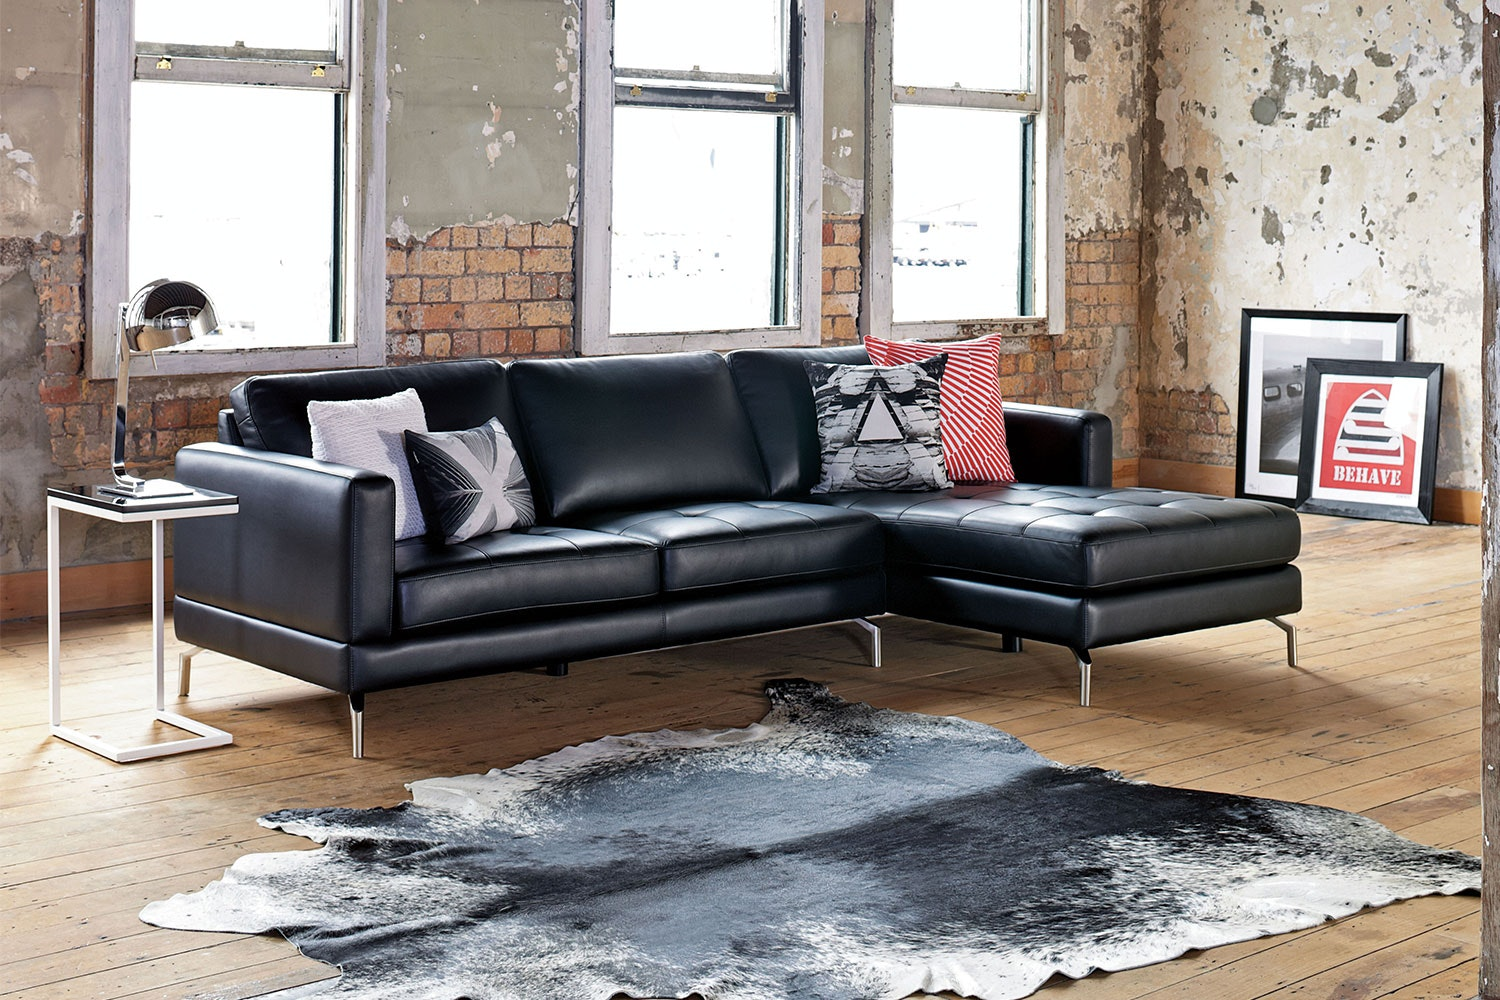 Spencer 3 Seater Fabric Sofa with Chaise : harvey norman chaise - Sectionals, Sofas & Couches